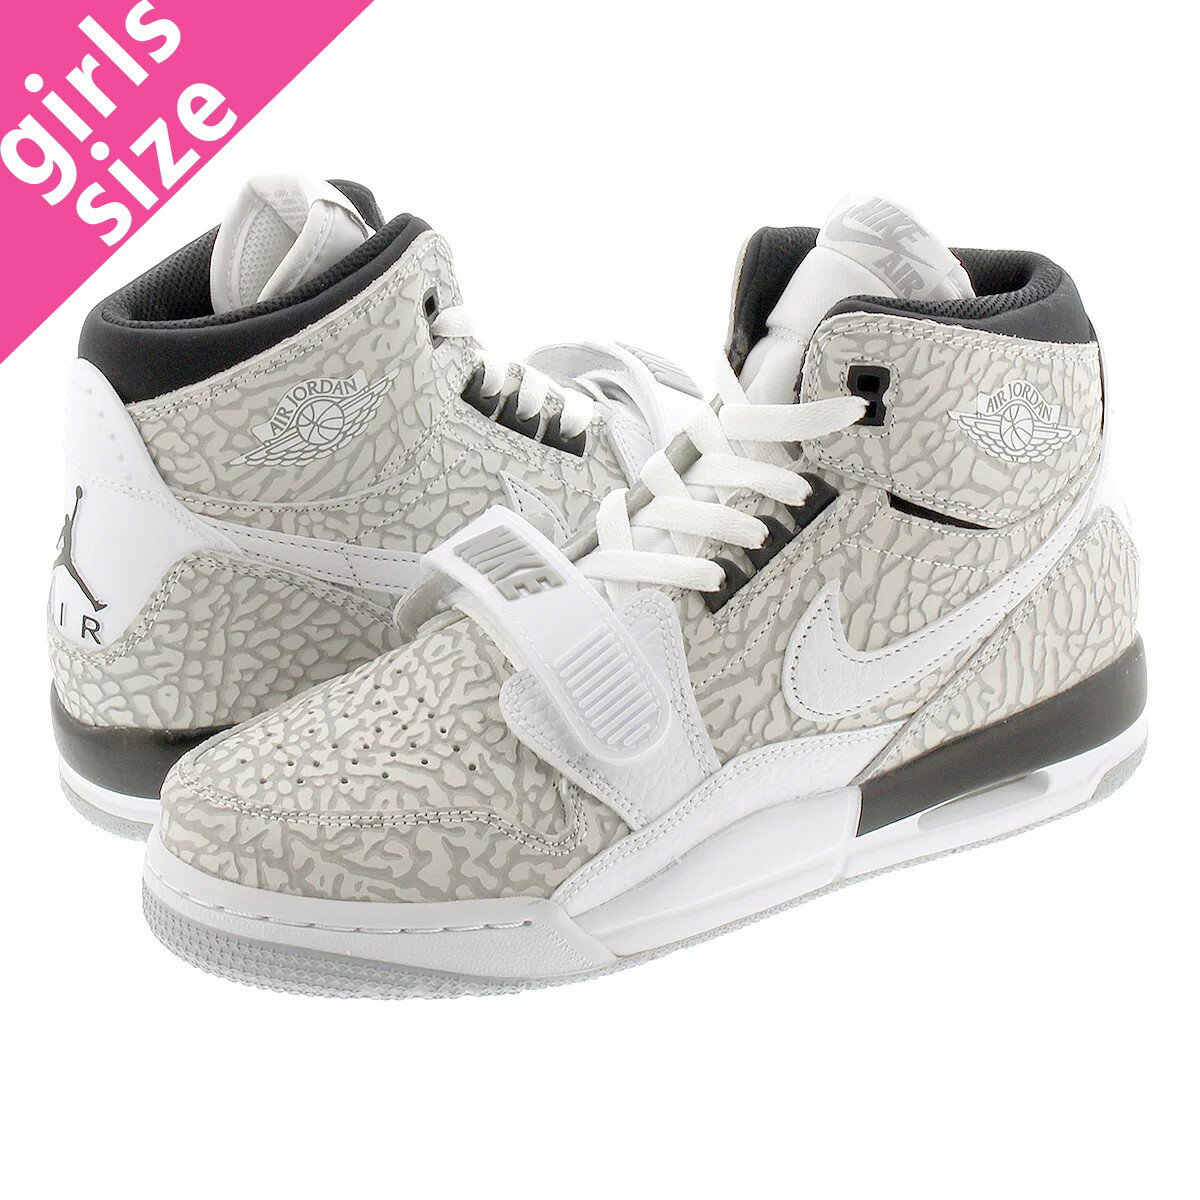 メンズ靴, スニーカー NIKE AIR JORDAN LEGACY 312 GS 312 GS WHITEBLACK at4040-100